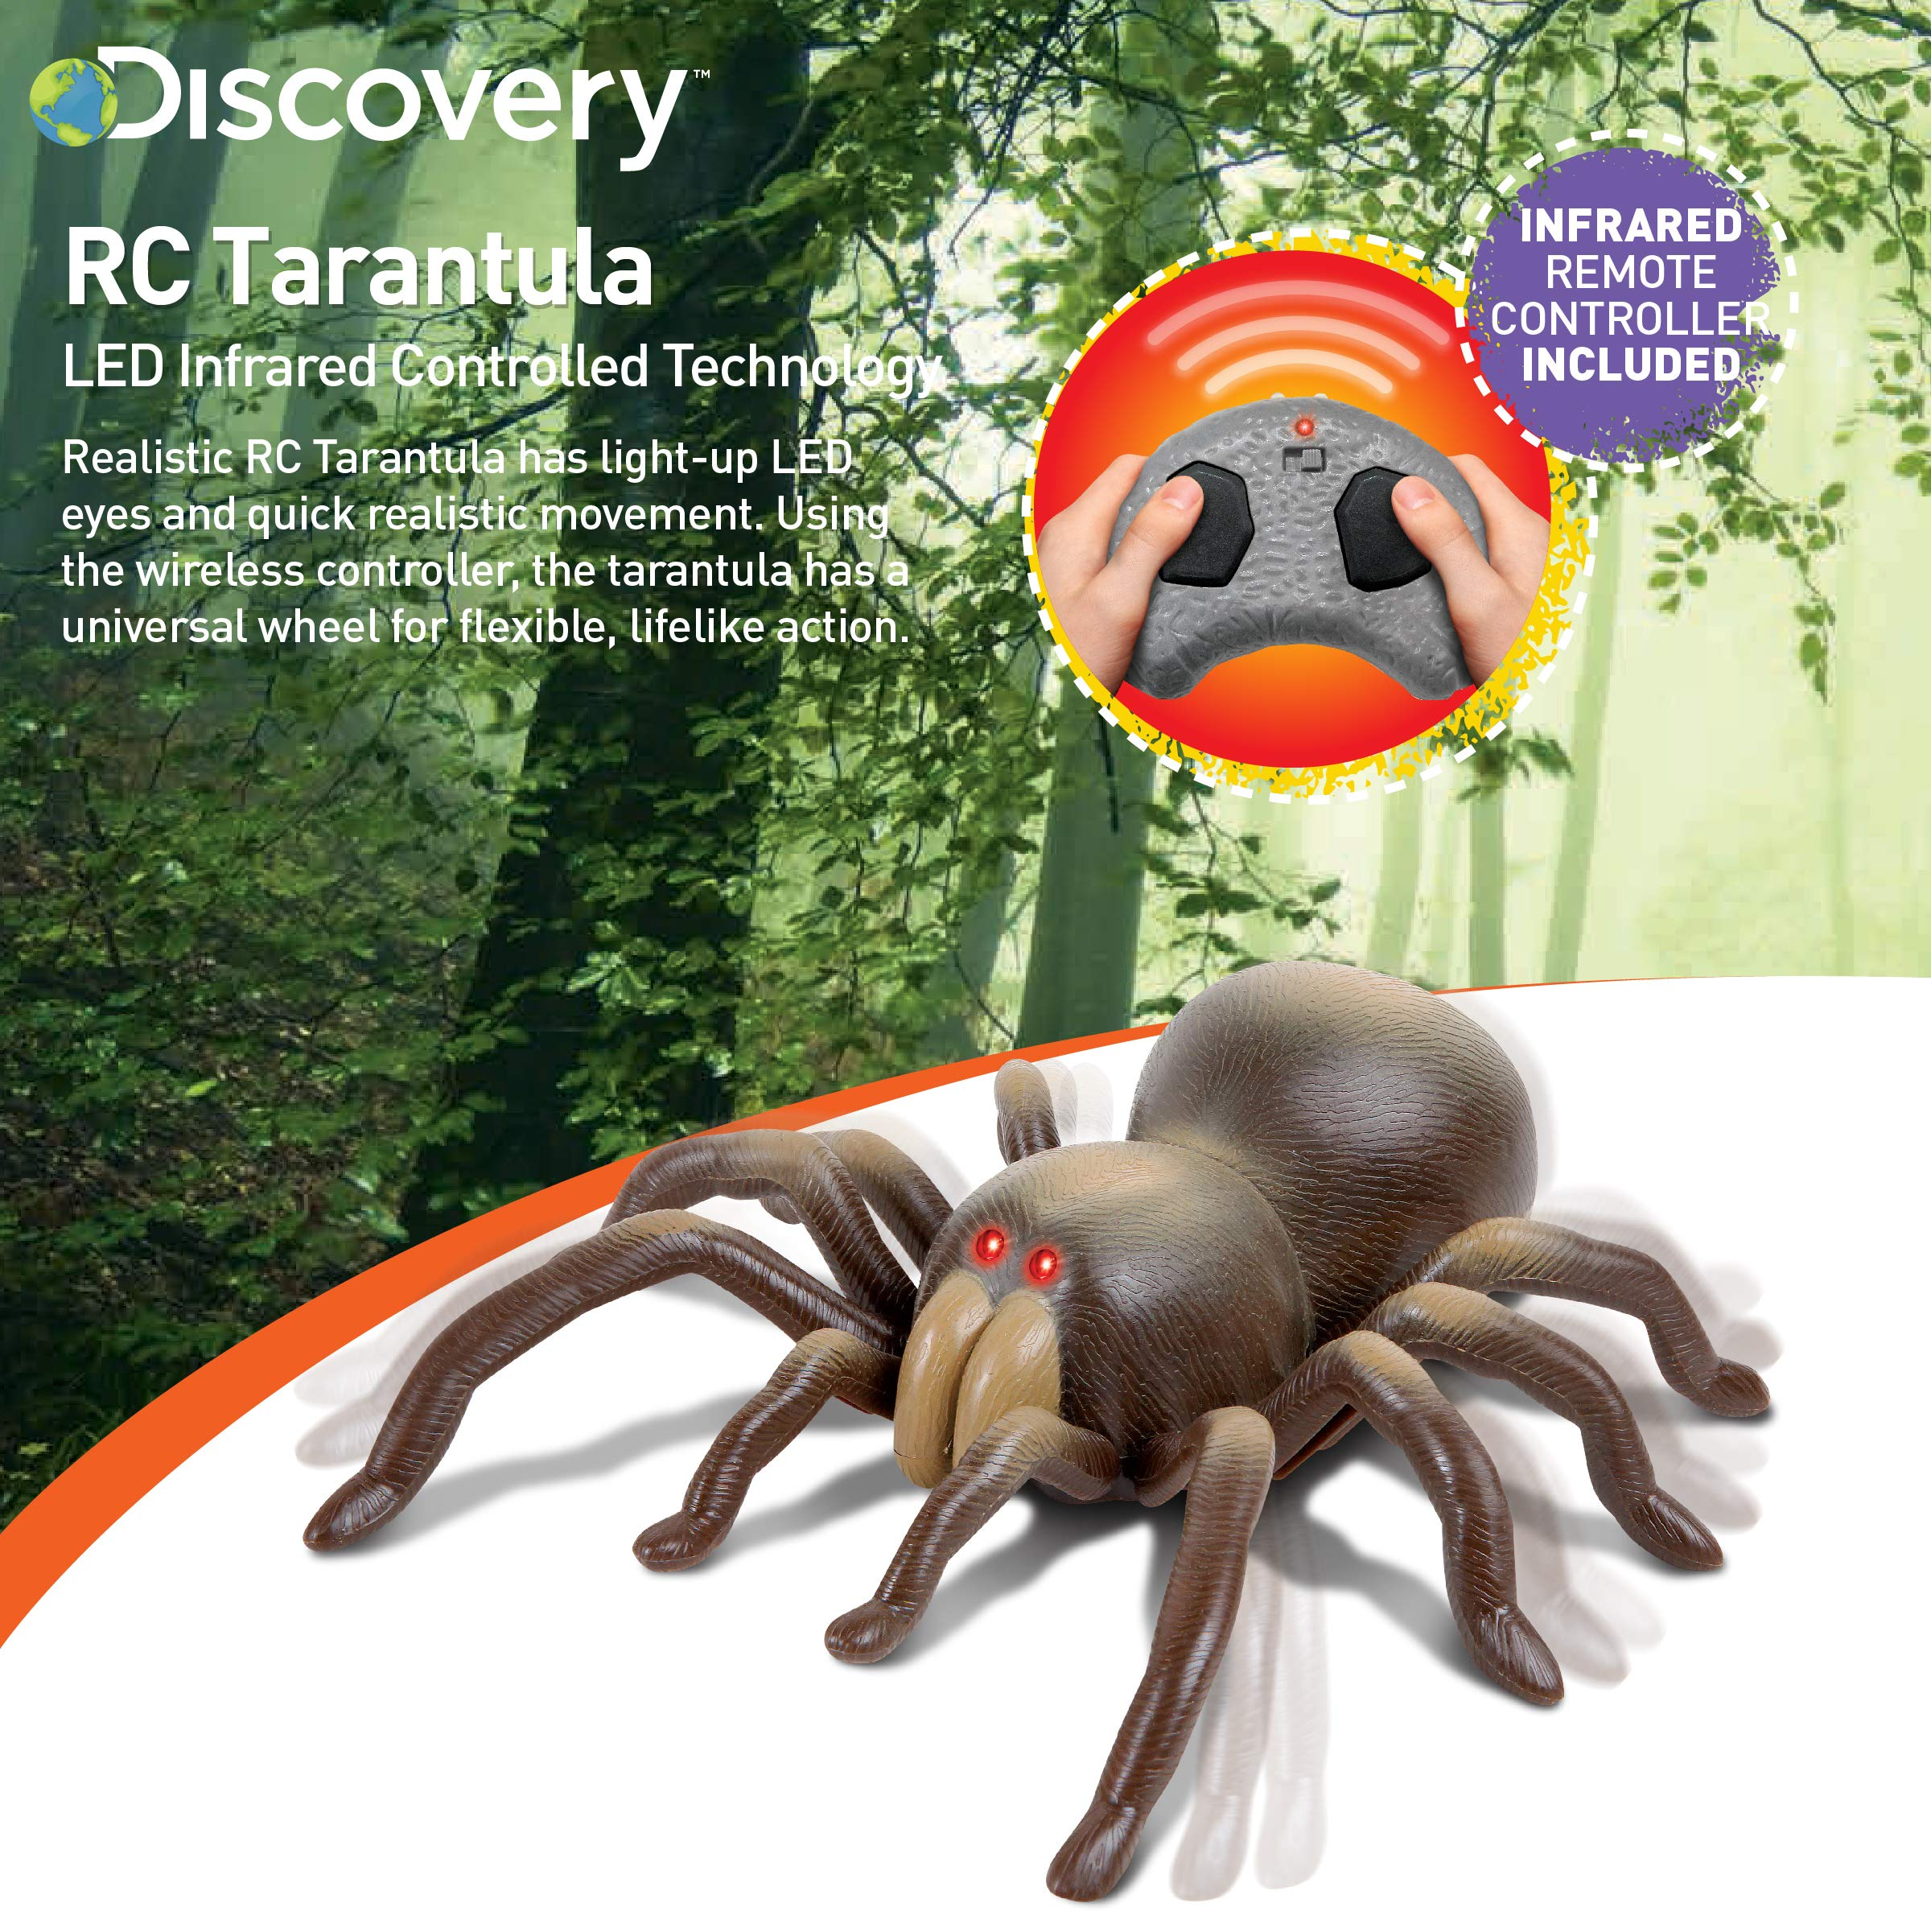 DISCOVERY KIDS RC Moving Tarantula Spider, Wireless Remote Control Toy for Kids, Great for Pranks and Halloween Decorations, Realistic Scurrying Movement, Glowing Scary Red LED Eyes by Discovery Kids (Image #2)